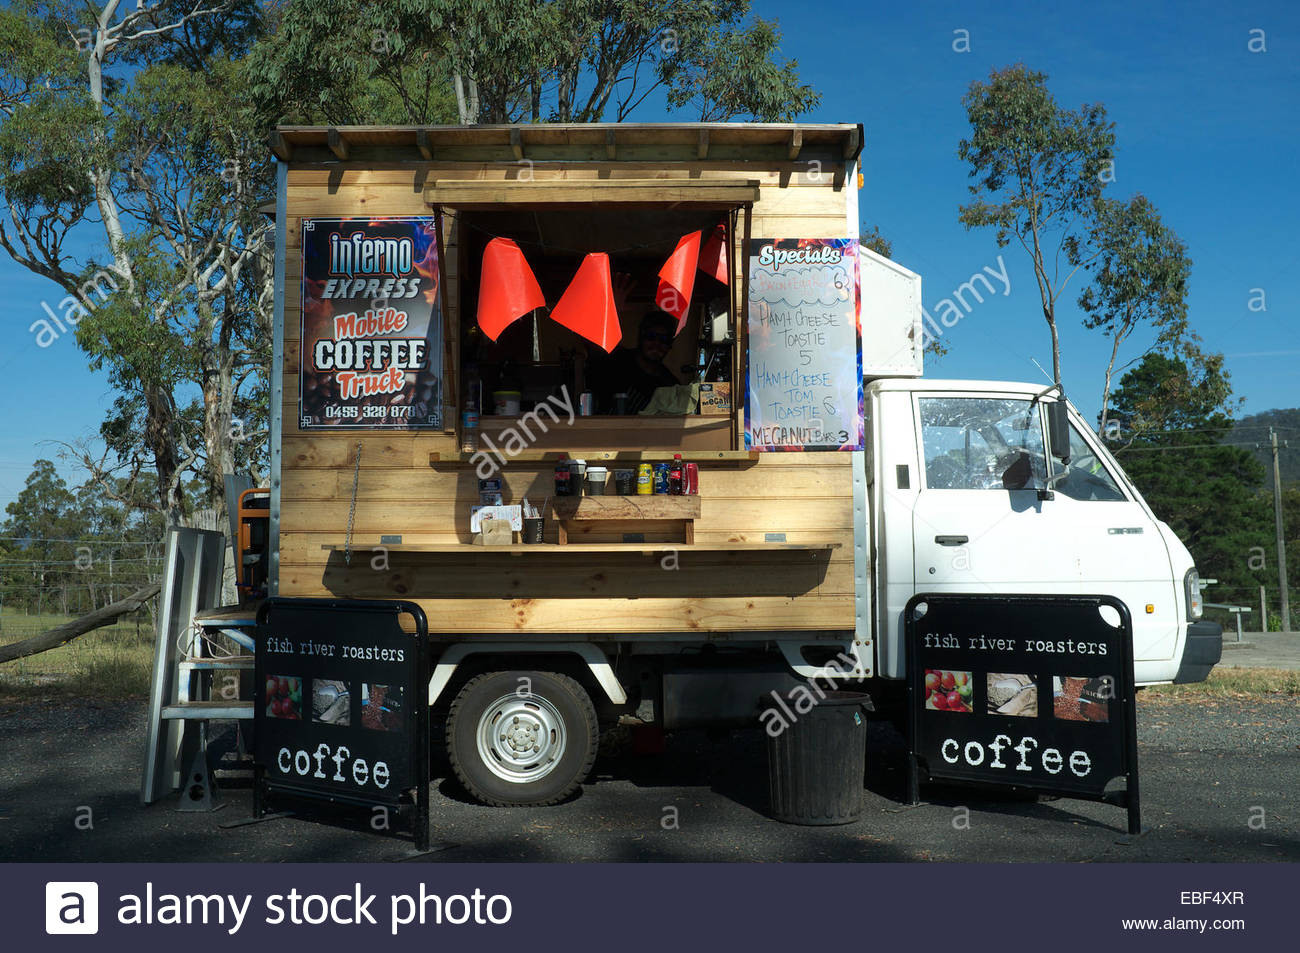 Mobile coffee truck - the 'Inferno Express', in a lay-by on the Great Western Highway, near Lithgow, NSW, Australia. Stock Photo